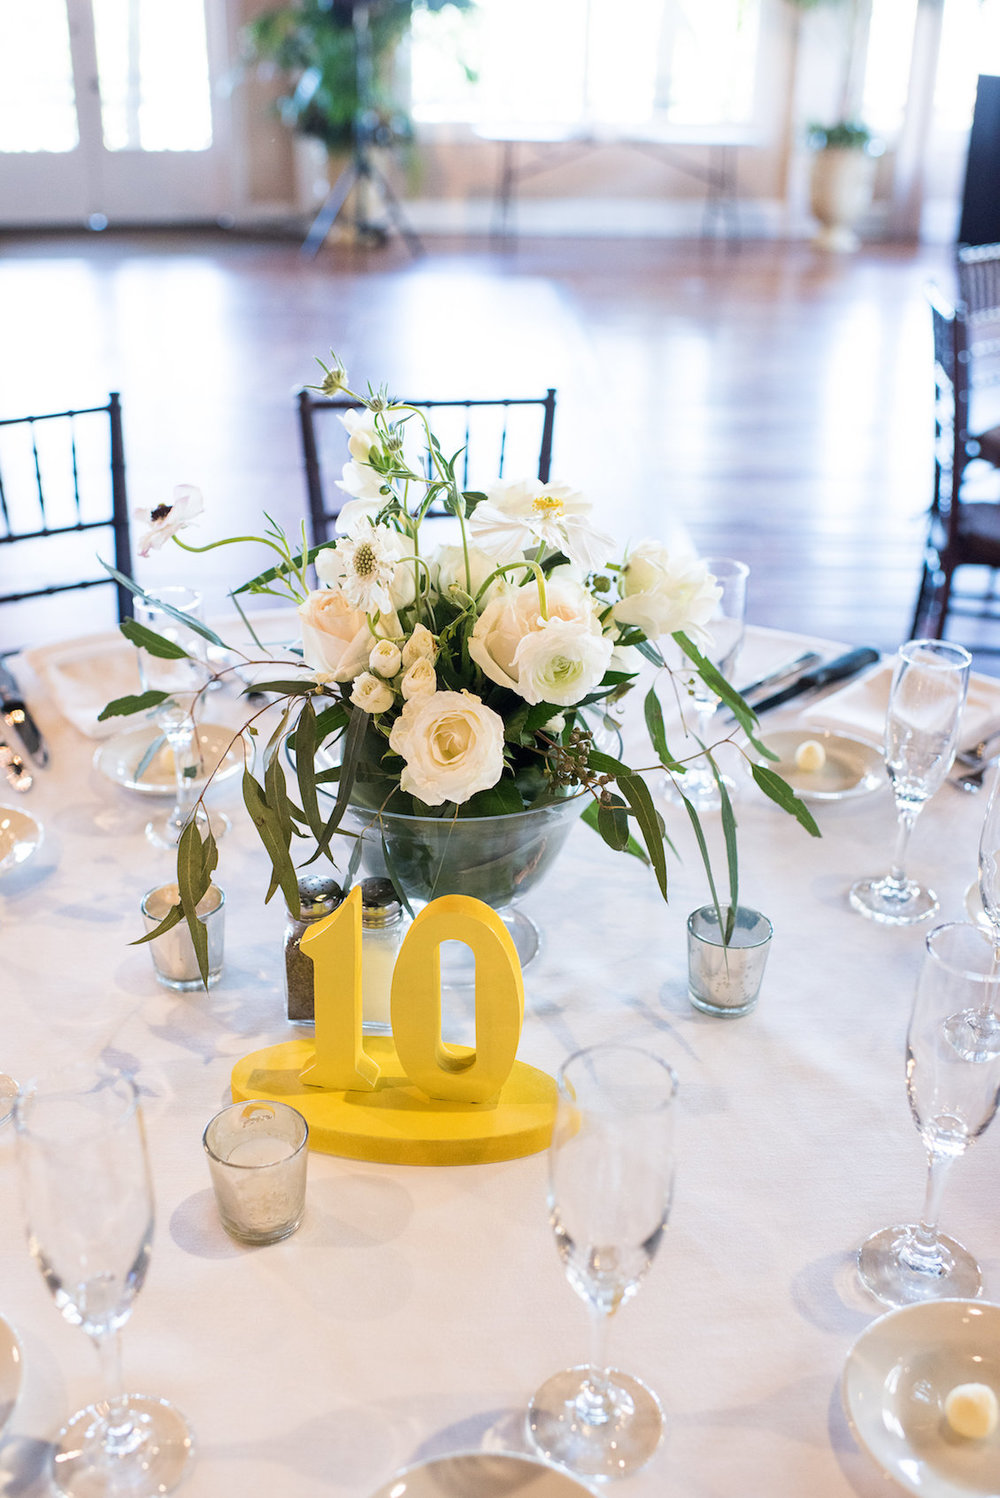 Florida Wedding Tablescape with Yellow Table Number Sign / Séverine Photography